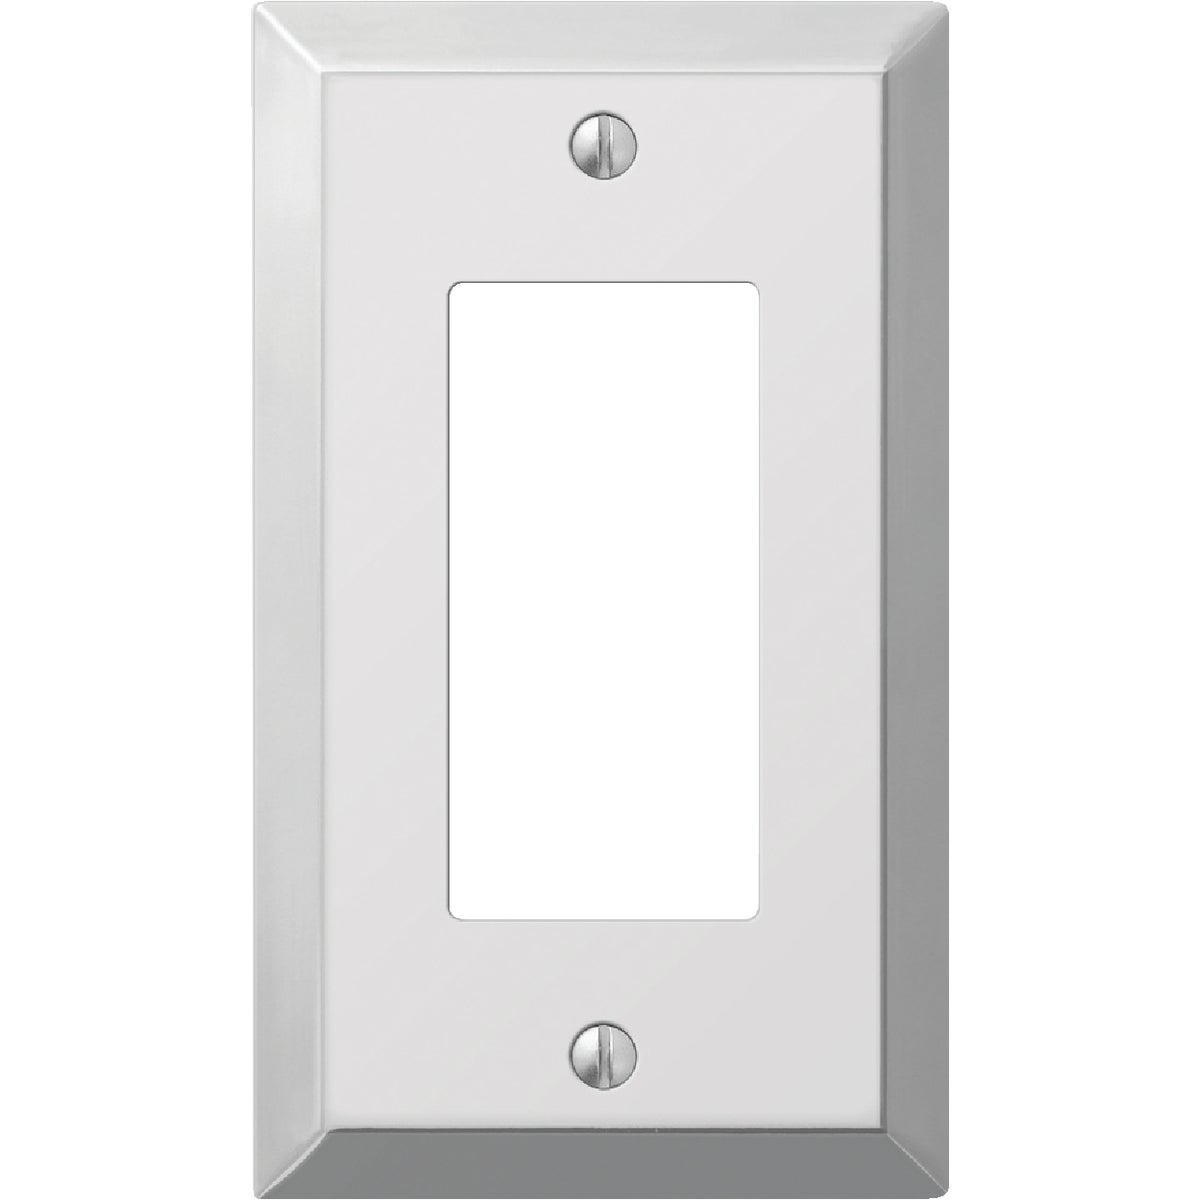 CHR GFI WALL PLATE - 9CS117 by Jackson Deerfield Mf